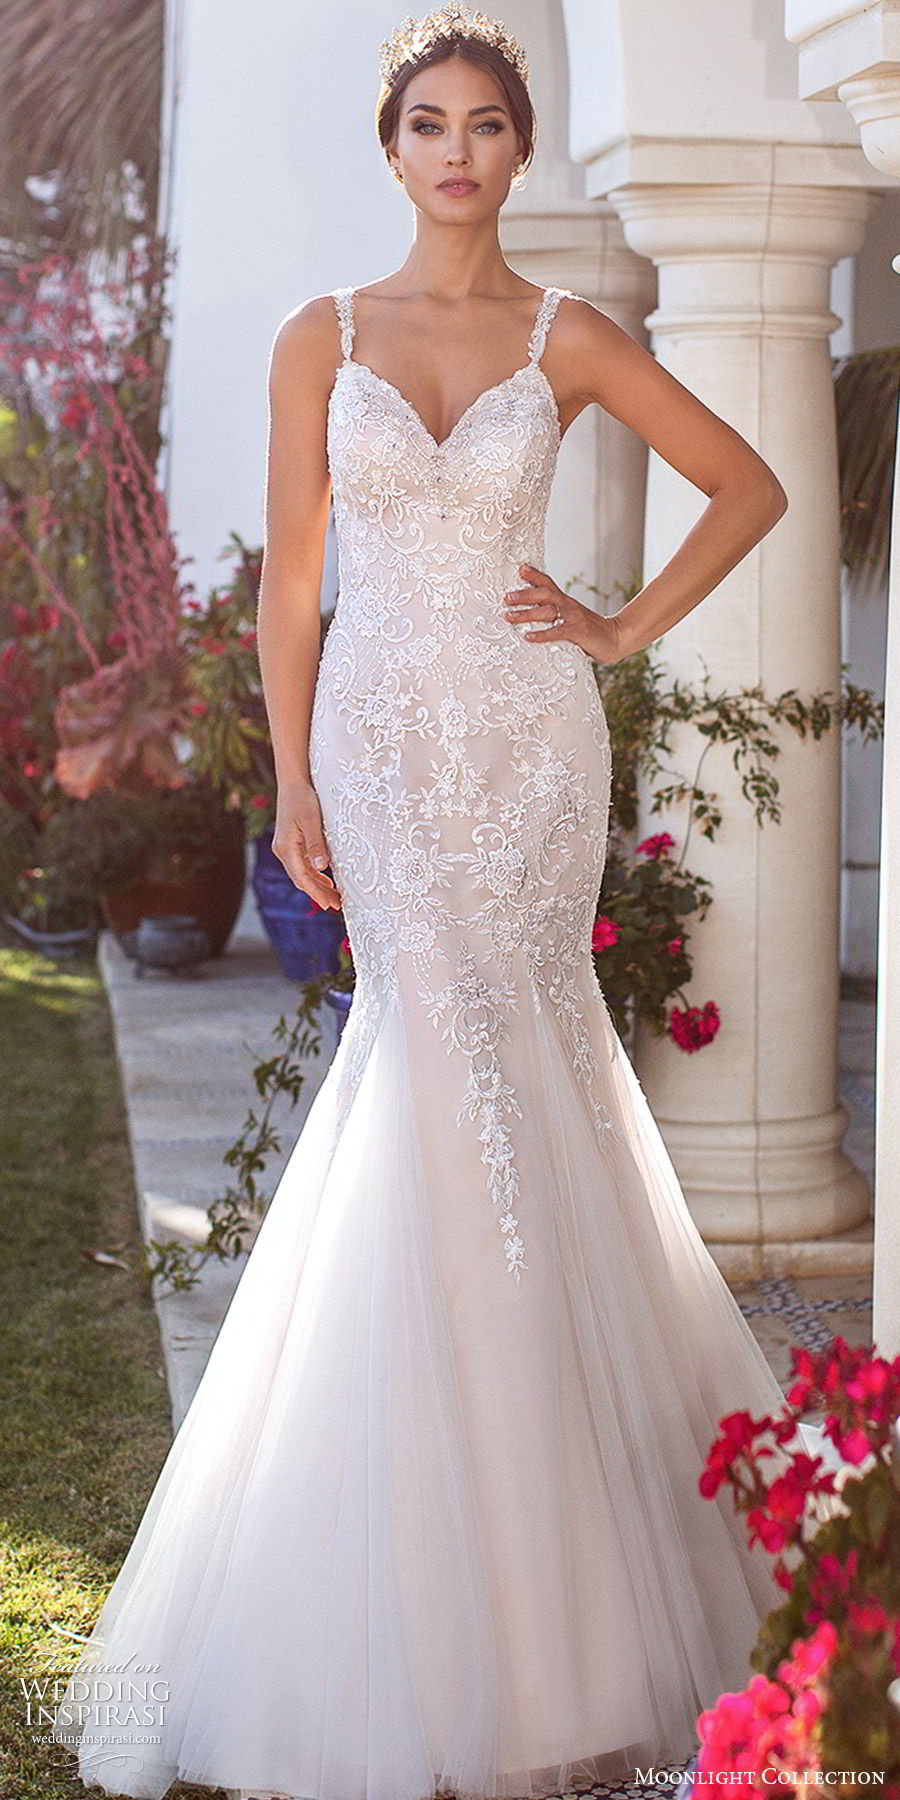 moonlight collection fall 2019 bridal sleeveless sweetheart straps embellished bodice fit flare mermaid wedding dress (1) illusion low back sweep train sleek elegant mv